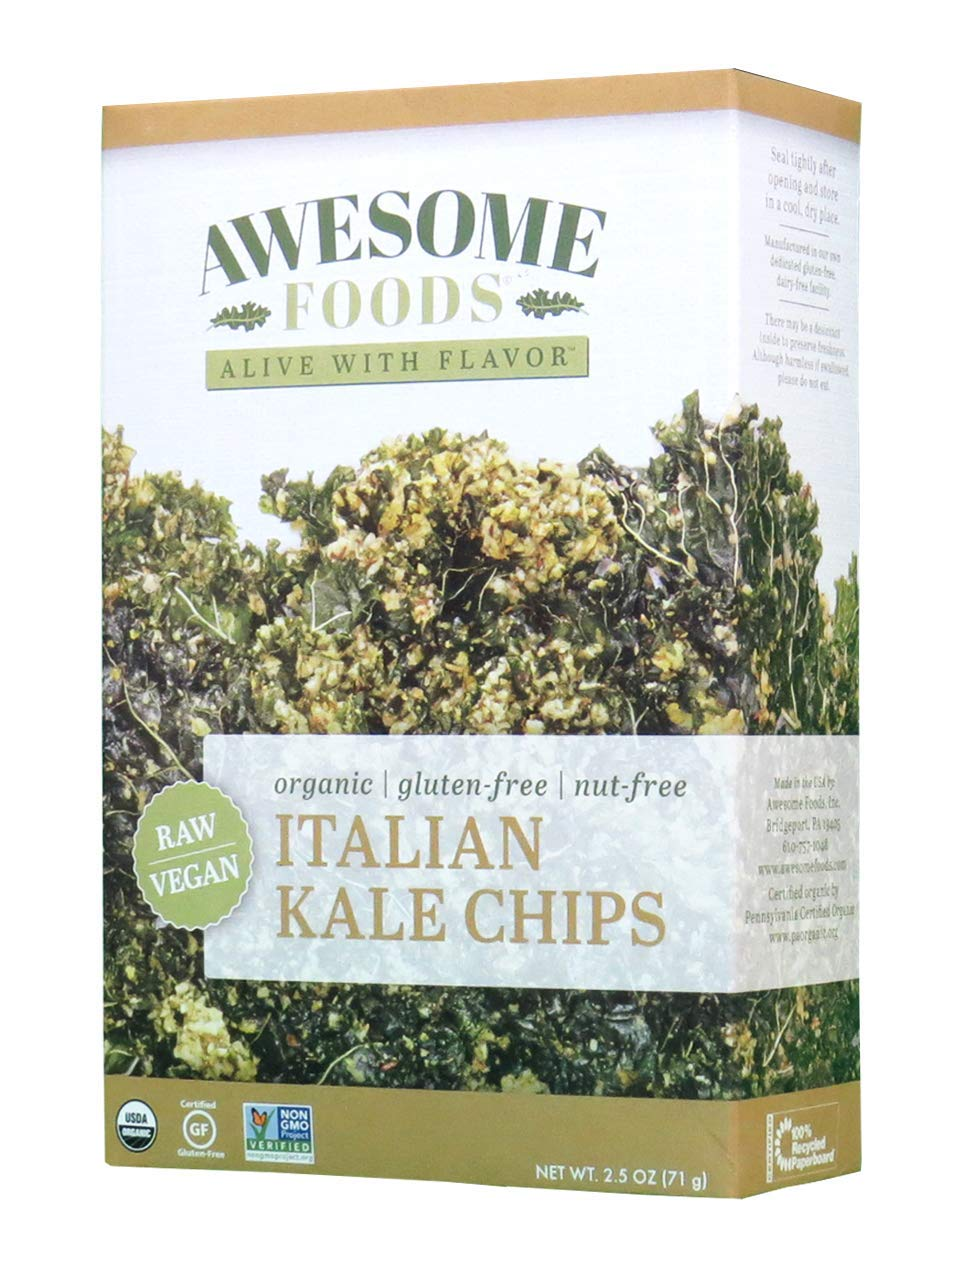 Awesome Foods, Organic, Gluten-Free, Plant-based, Non-GMO, Italian Kale Chips, 6 Pack